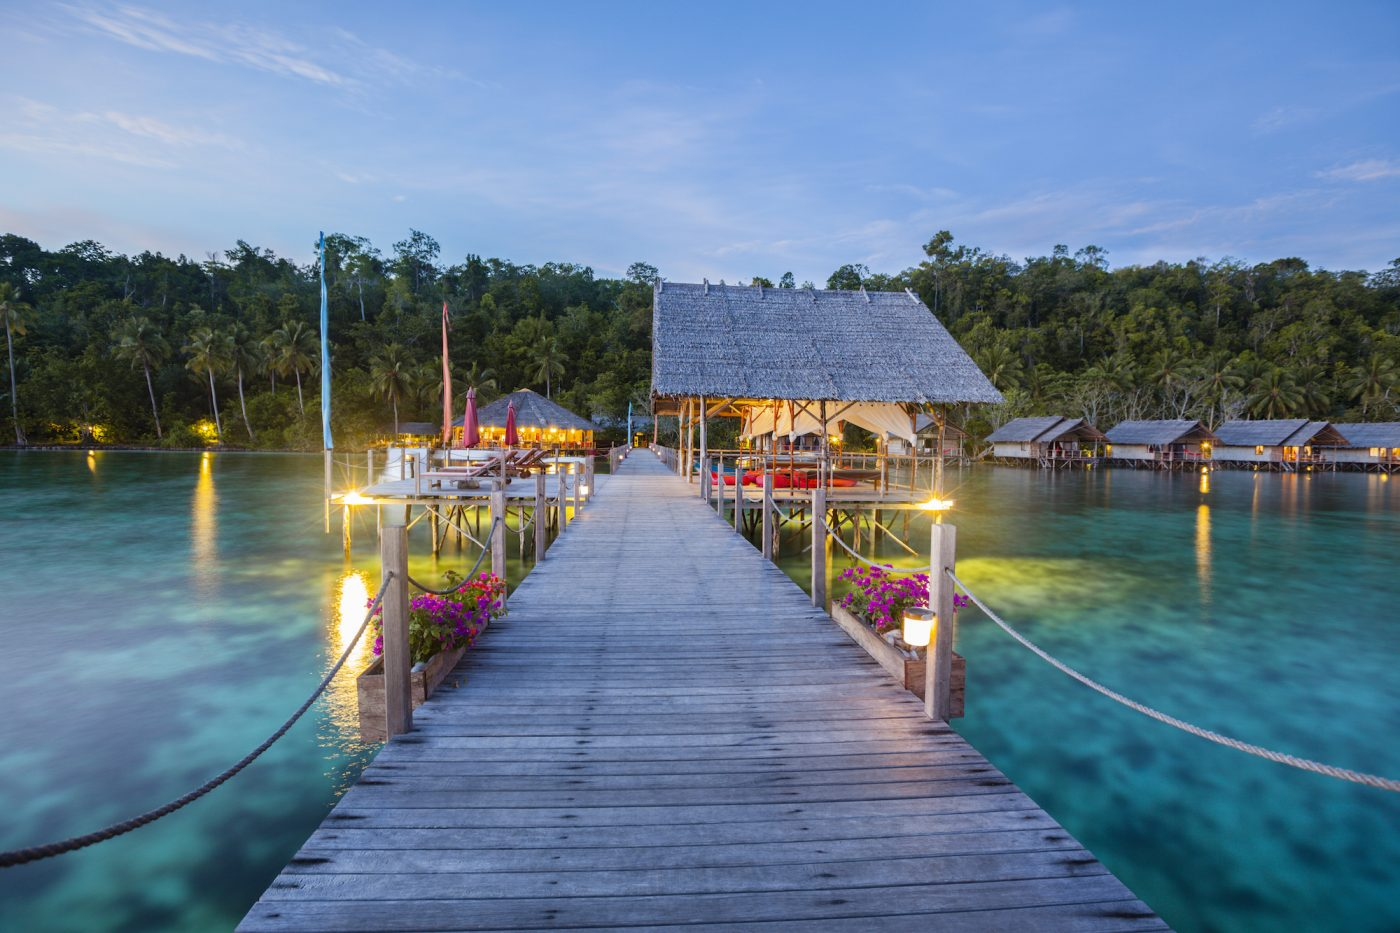 Raja Ampat Diving Resort